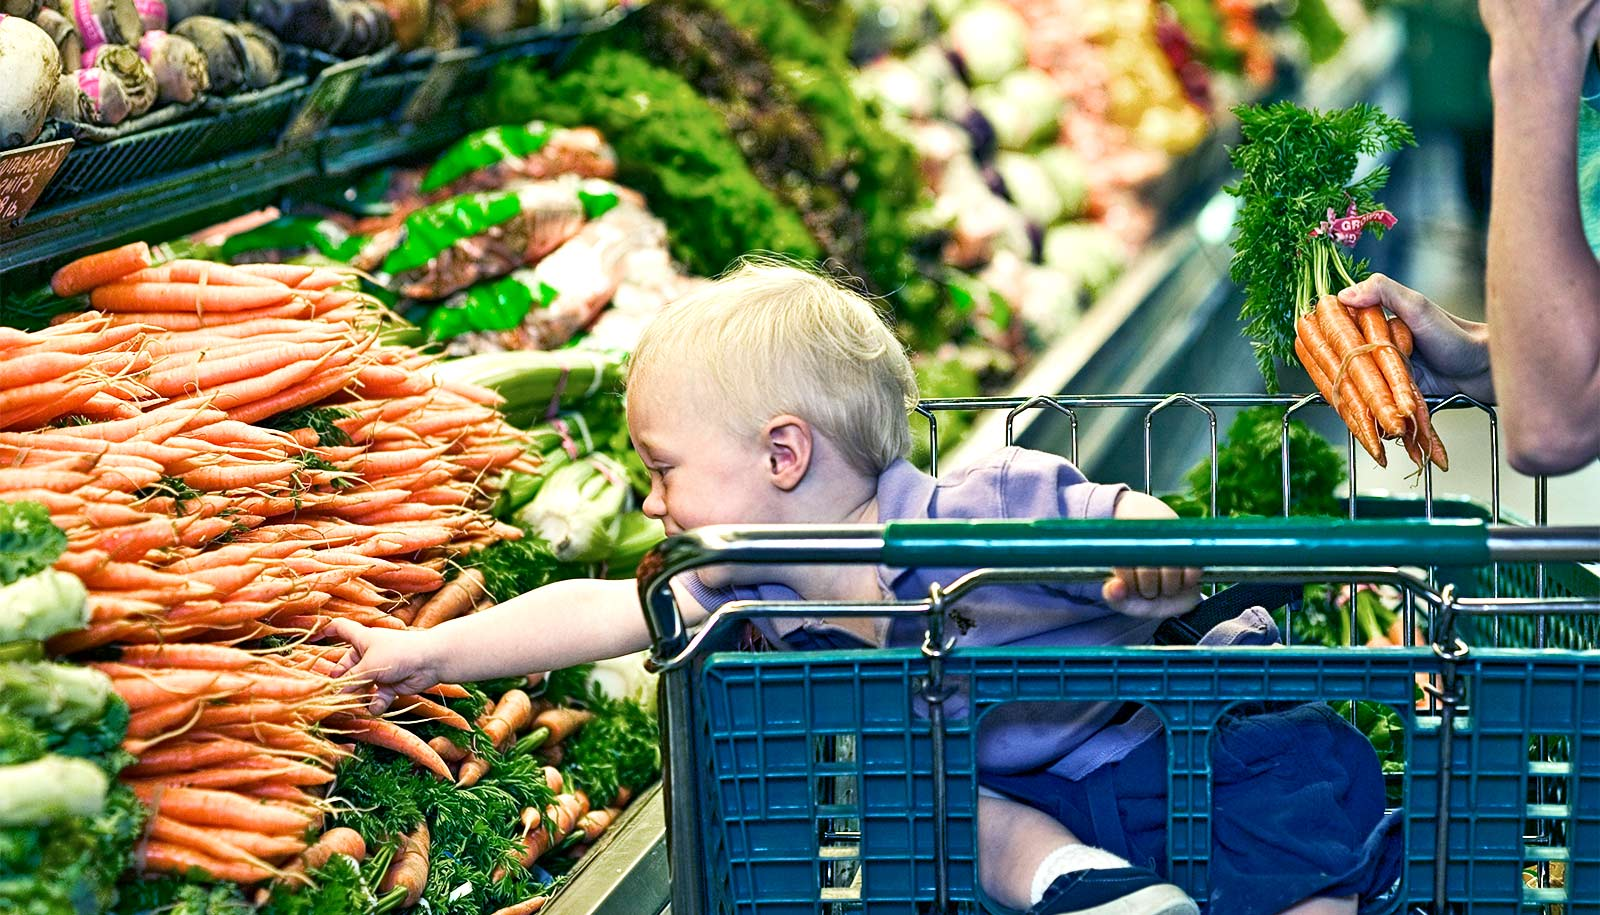 Some (but not all) new parents buy more fruits and veggies